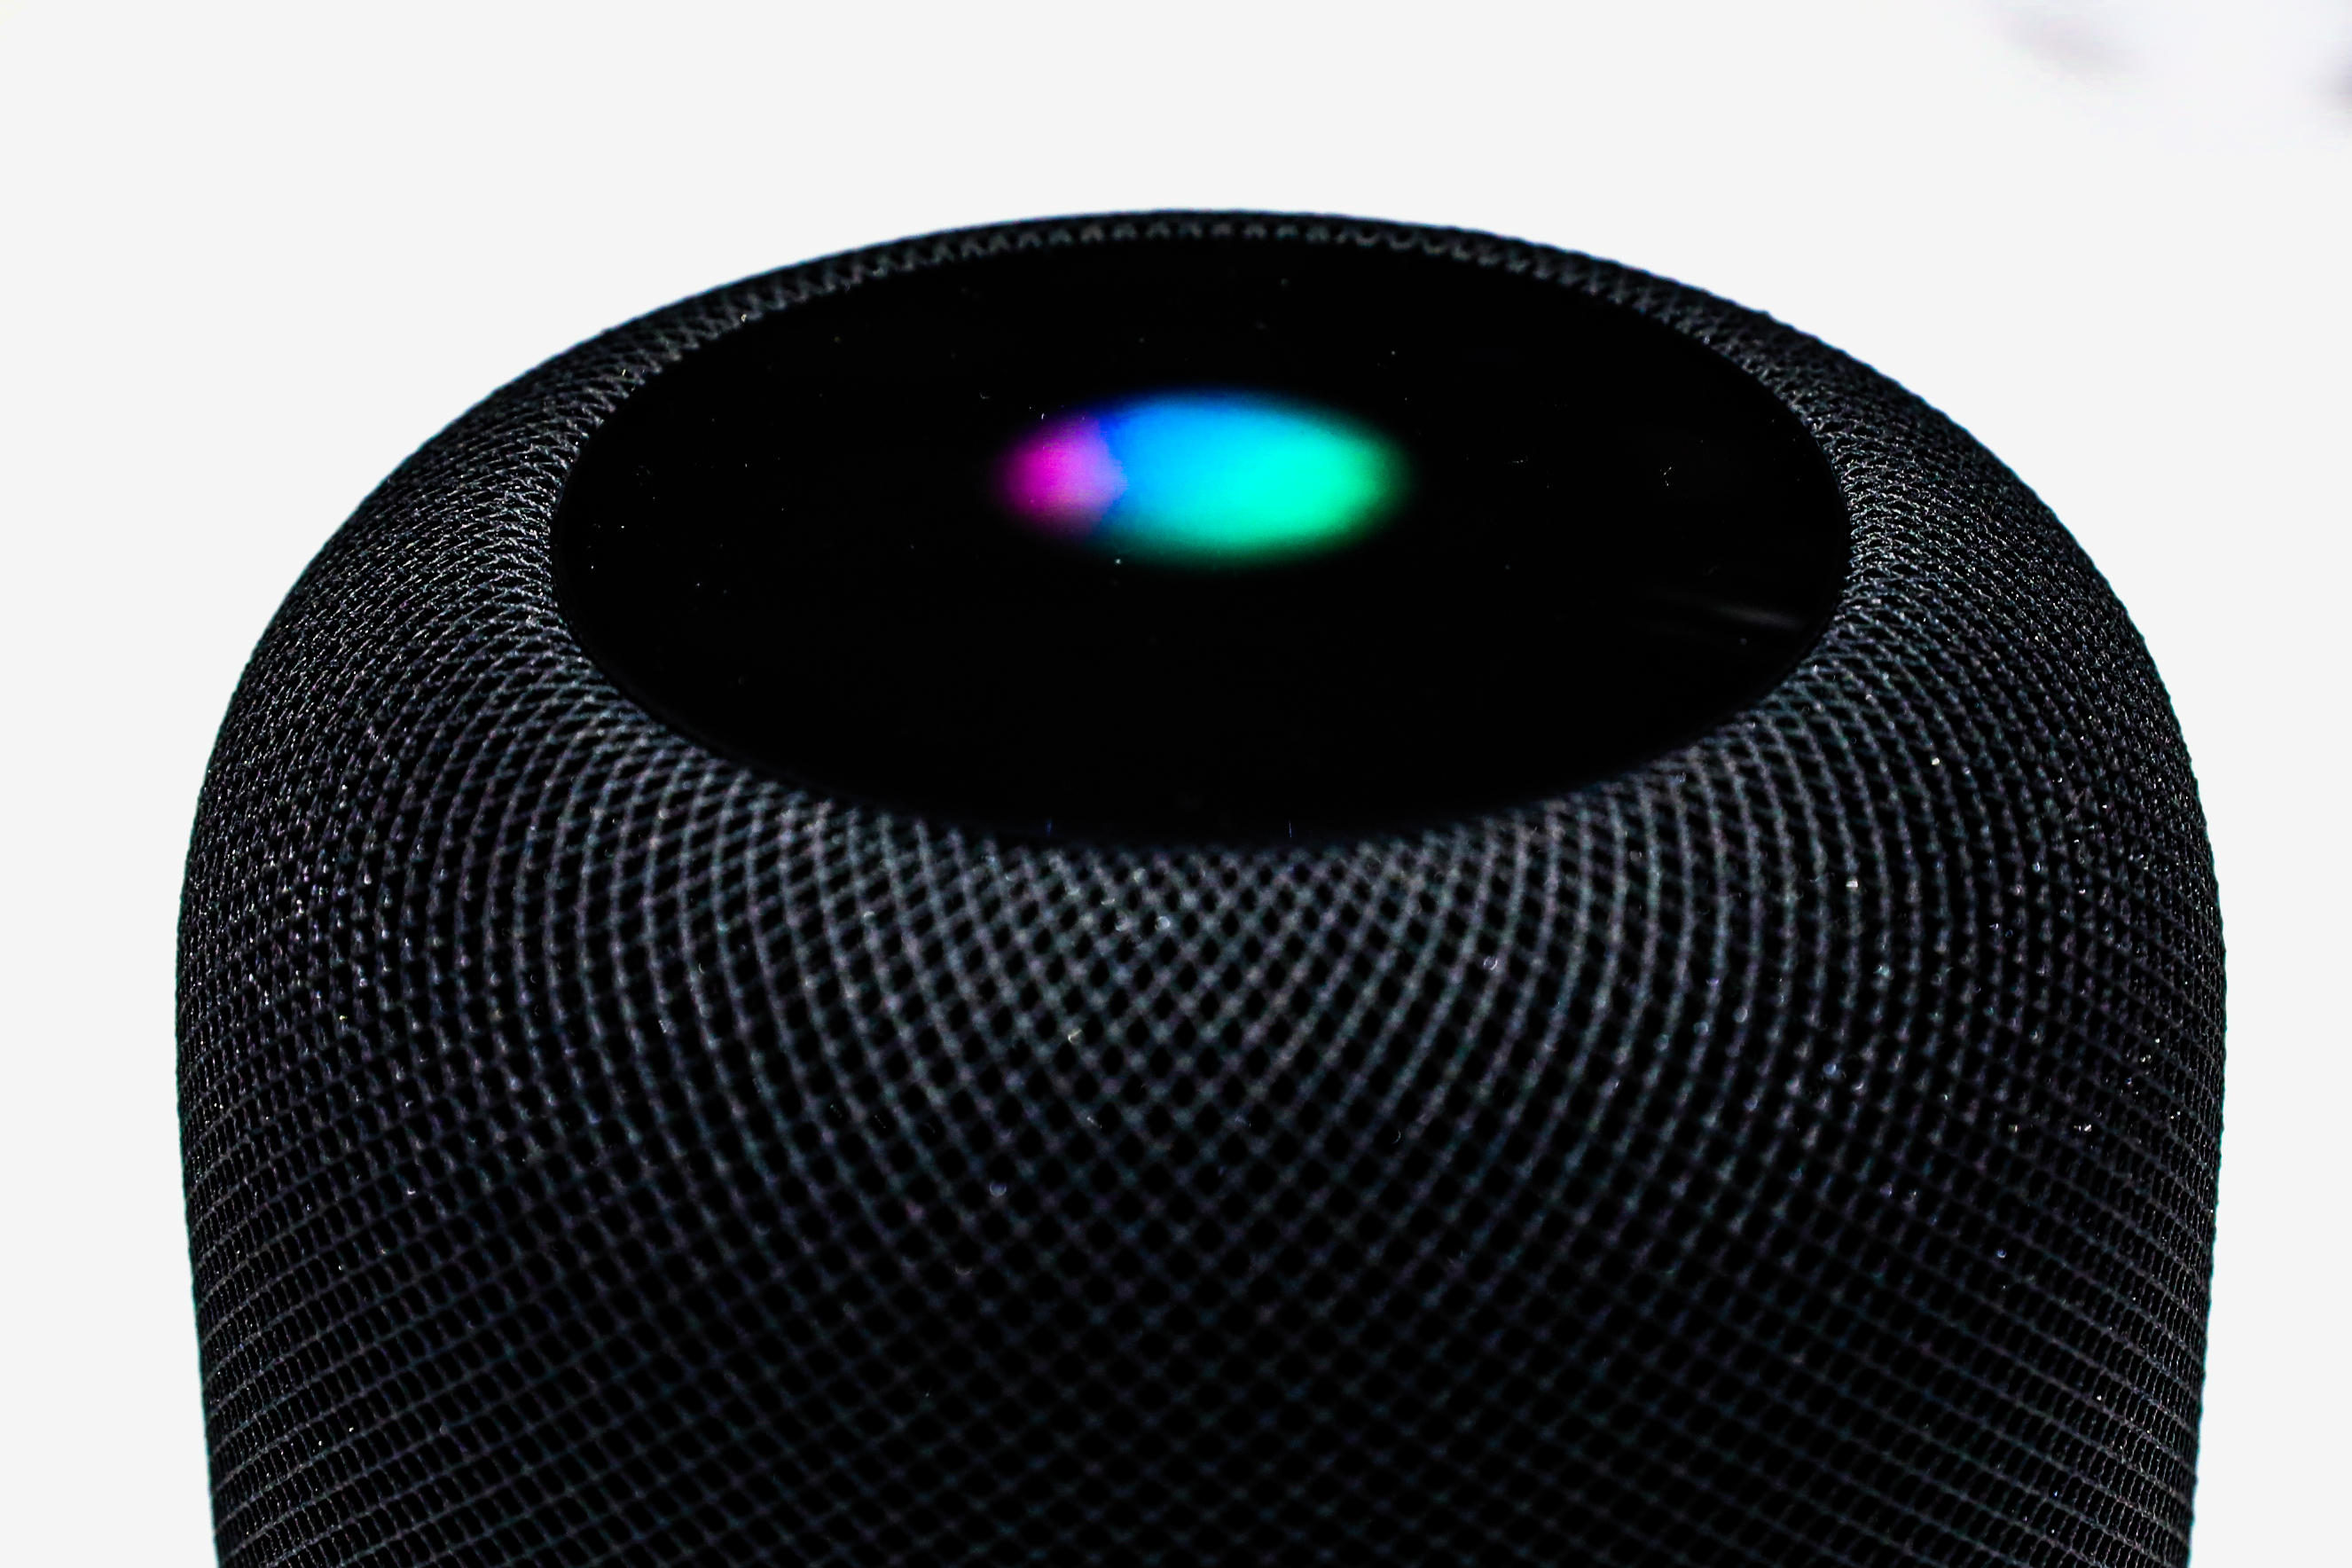 apple-wwdc-2017-homepod-4096